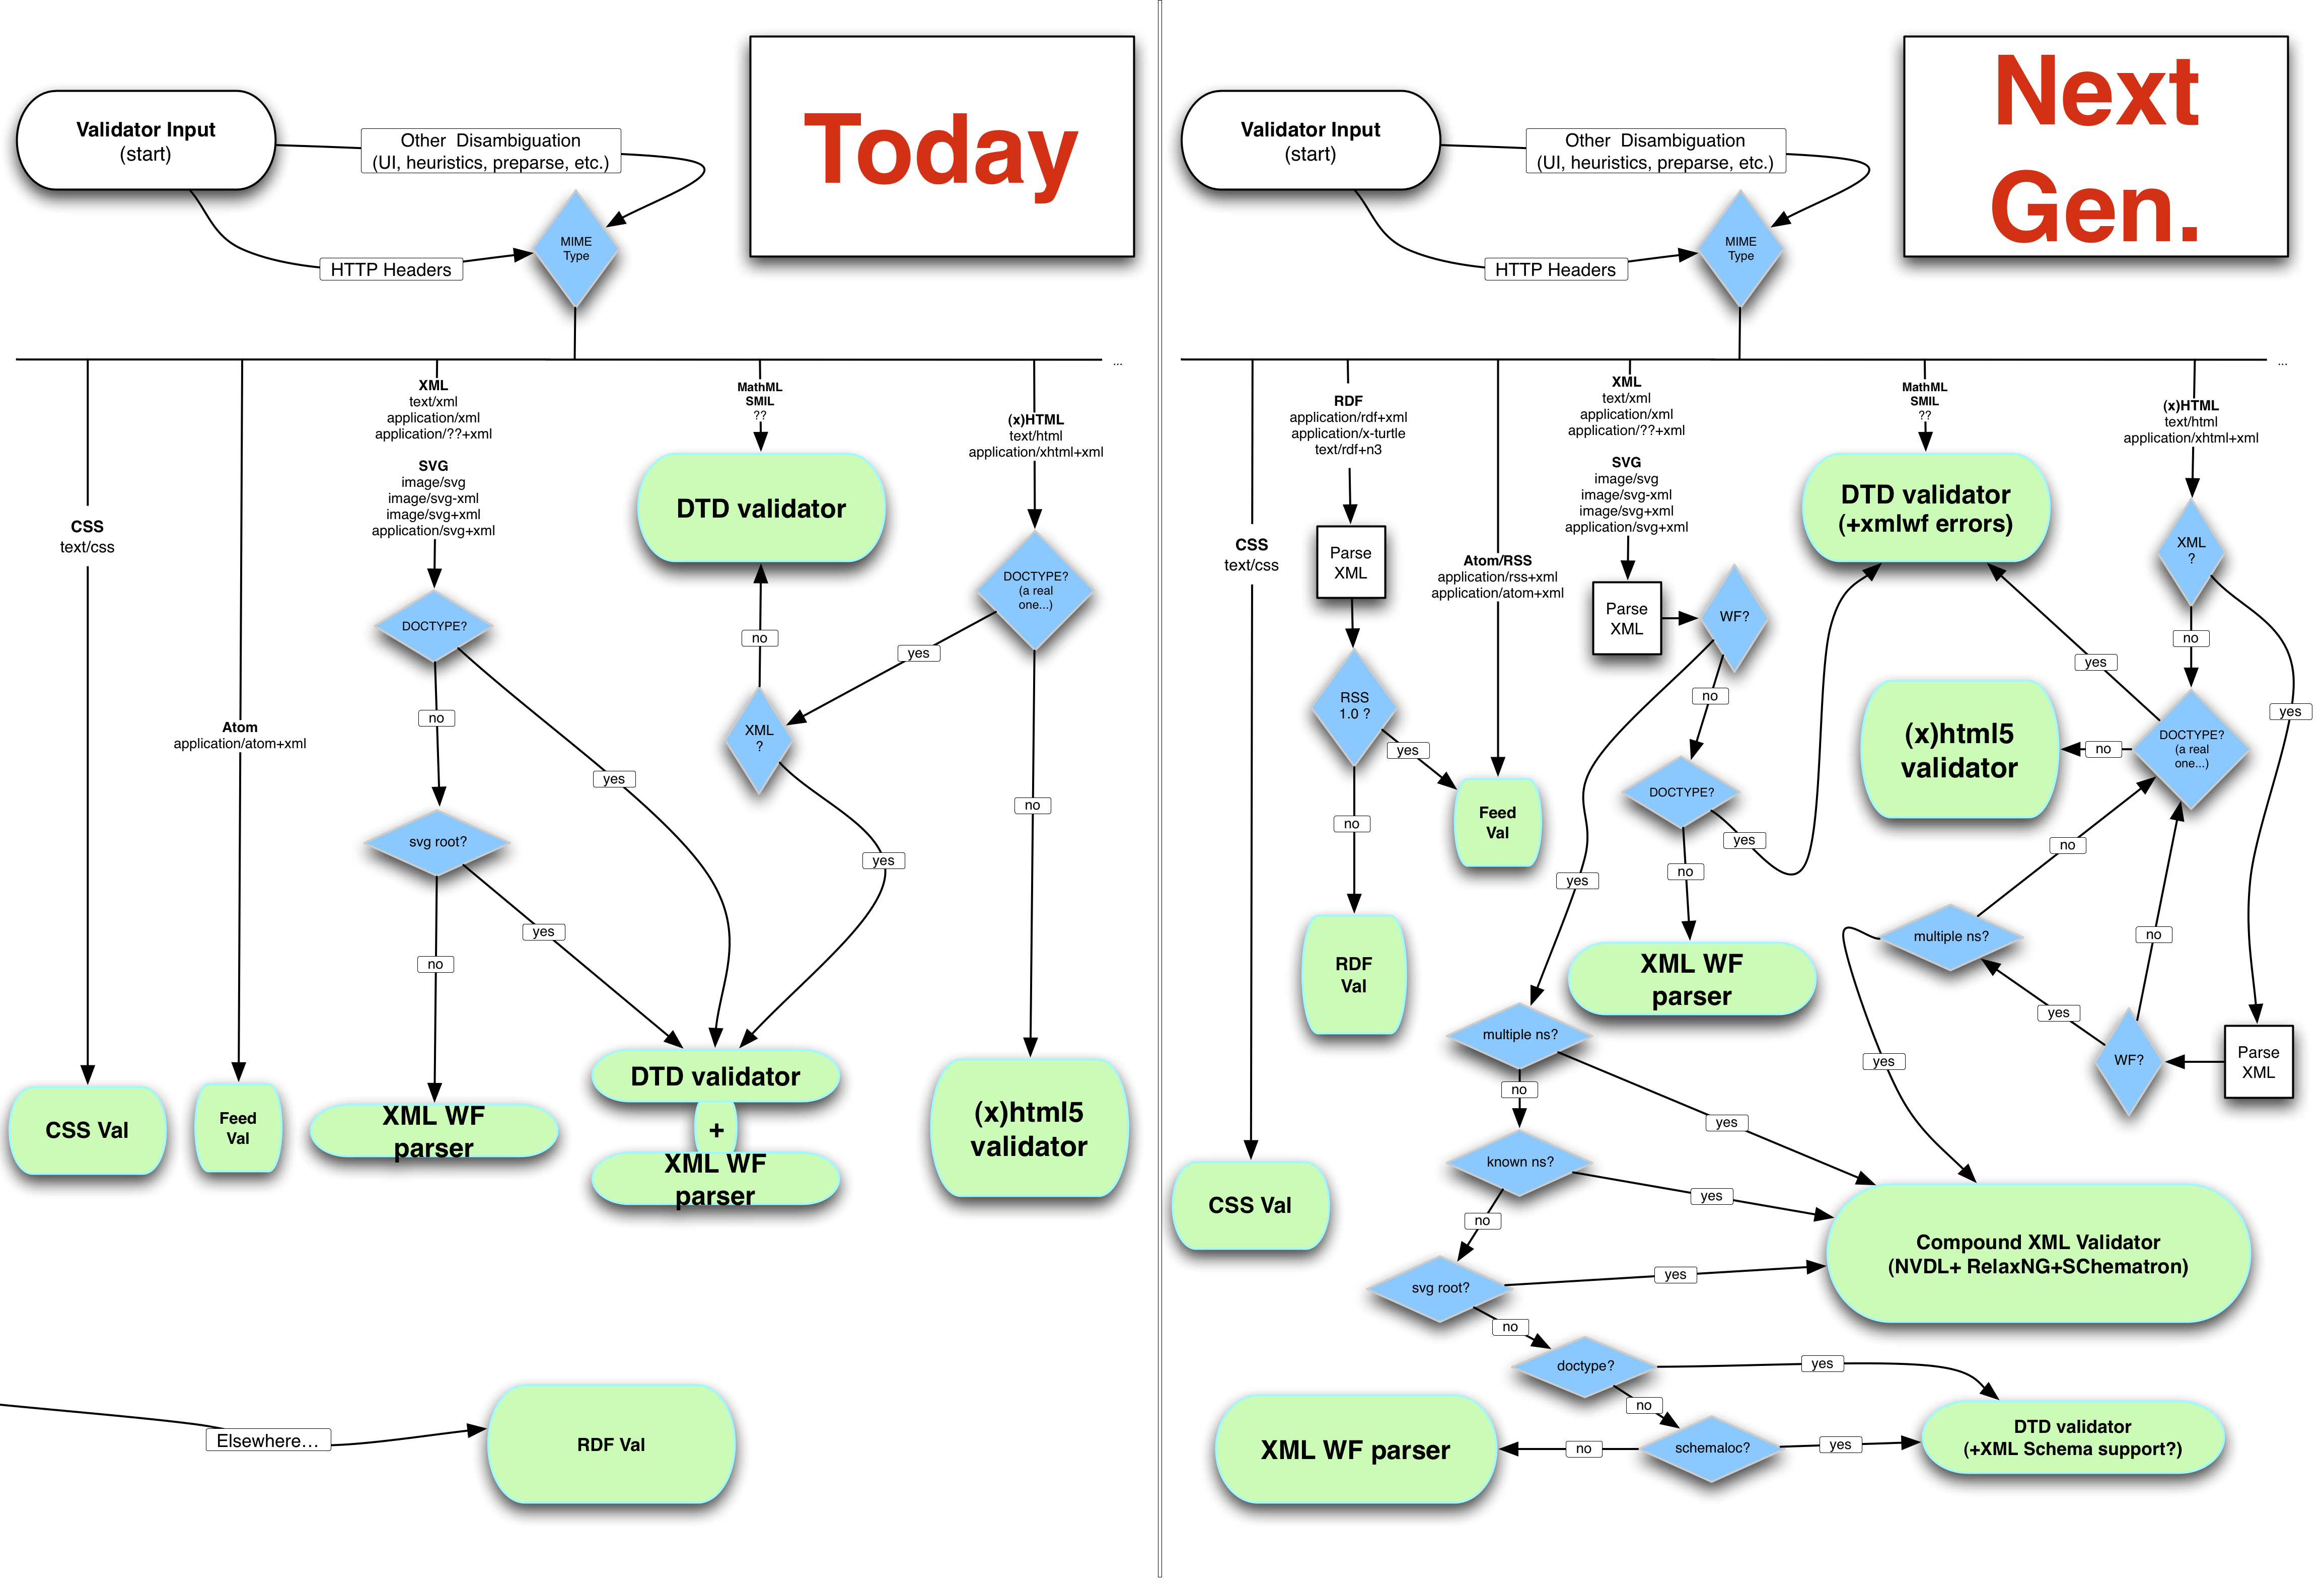 Development roadmap for the w3c markup validation service validator flow chart now and next generation ccuart Gallery